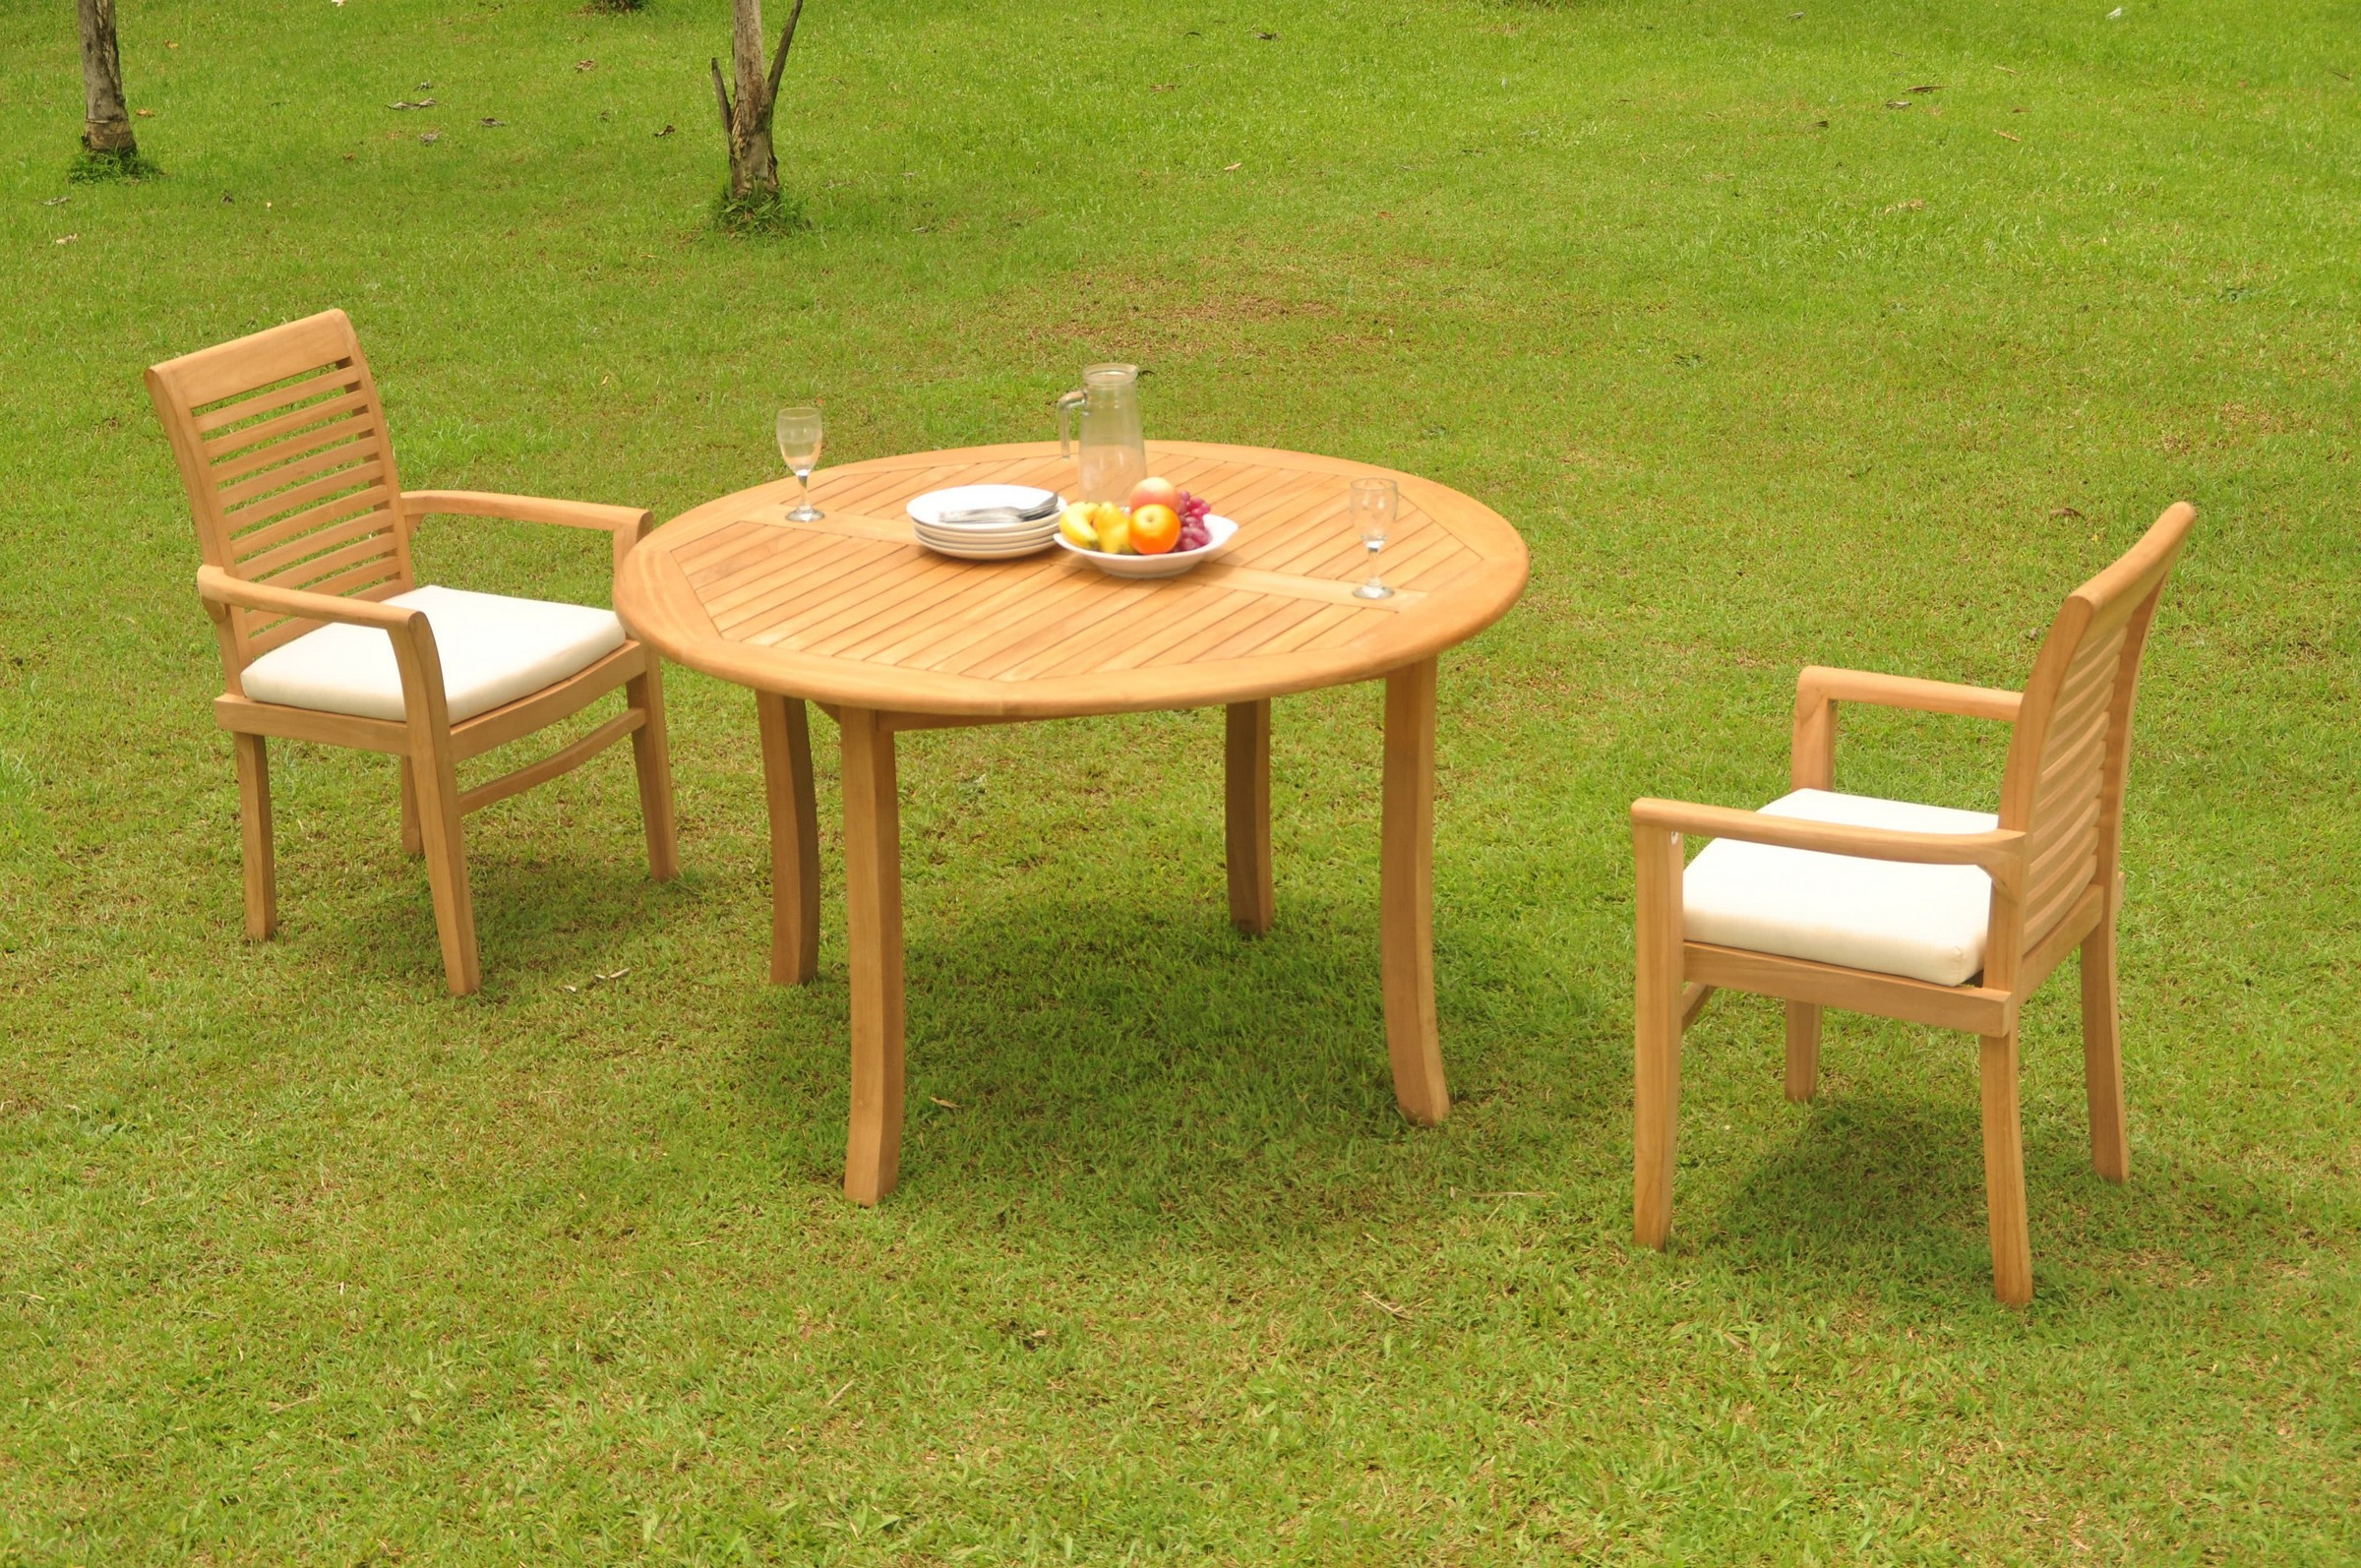 52 Round Table.Details About 3pc Grade A Teak Dining Set 52 Round Table 2 Mas Stacking Arm Chair Outdoor